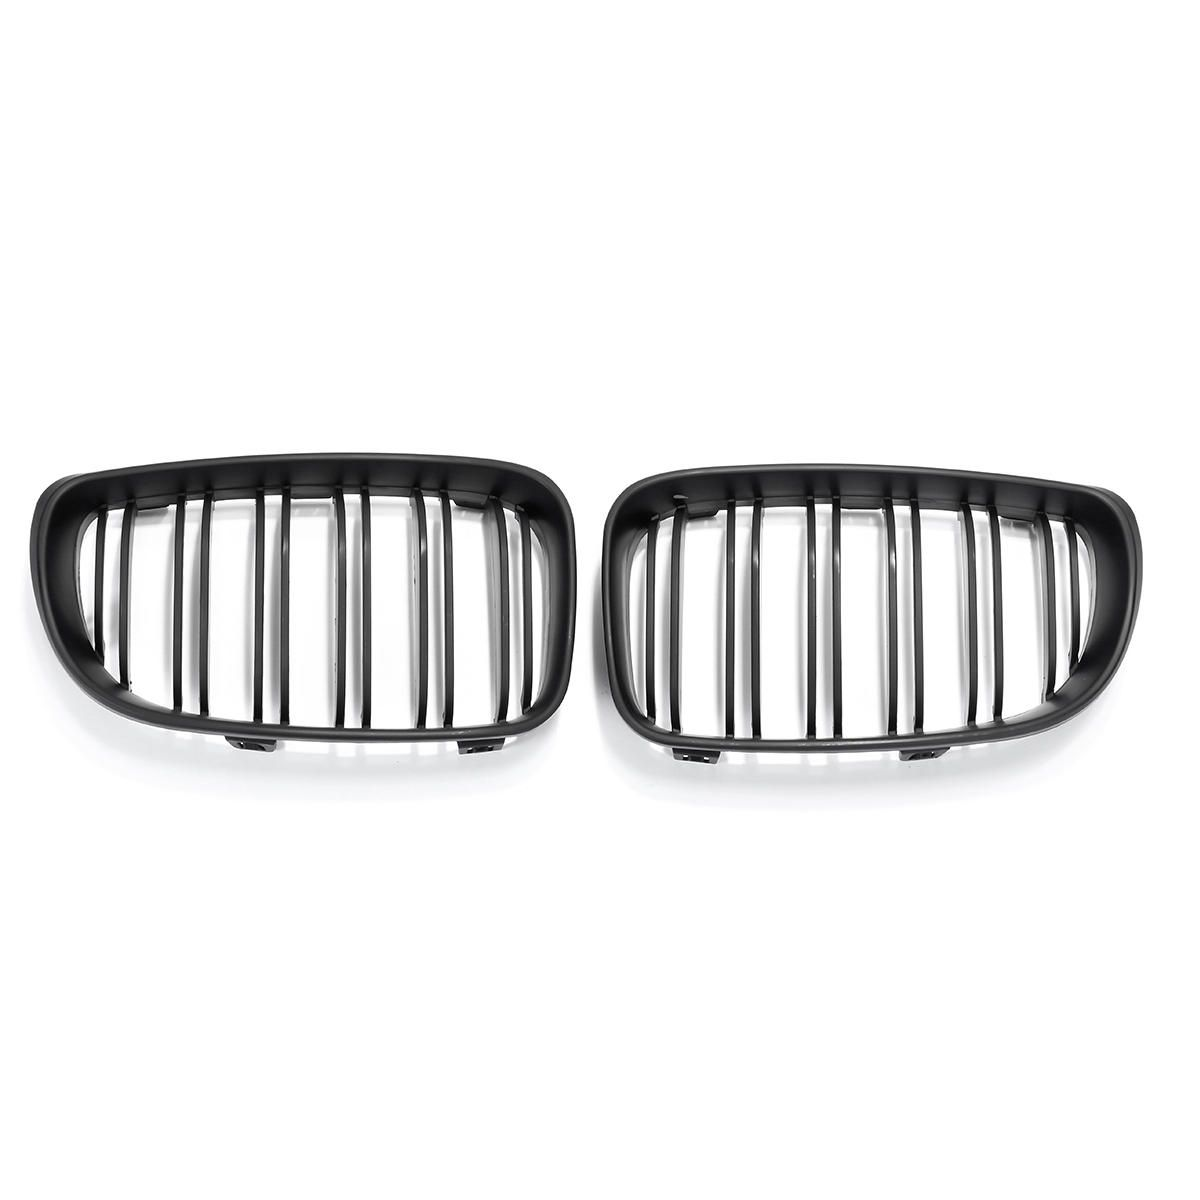 Matte Black Front Kidney Grill Grille For BMW E87 1 Series 0…